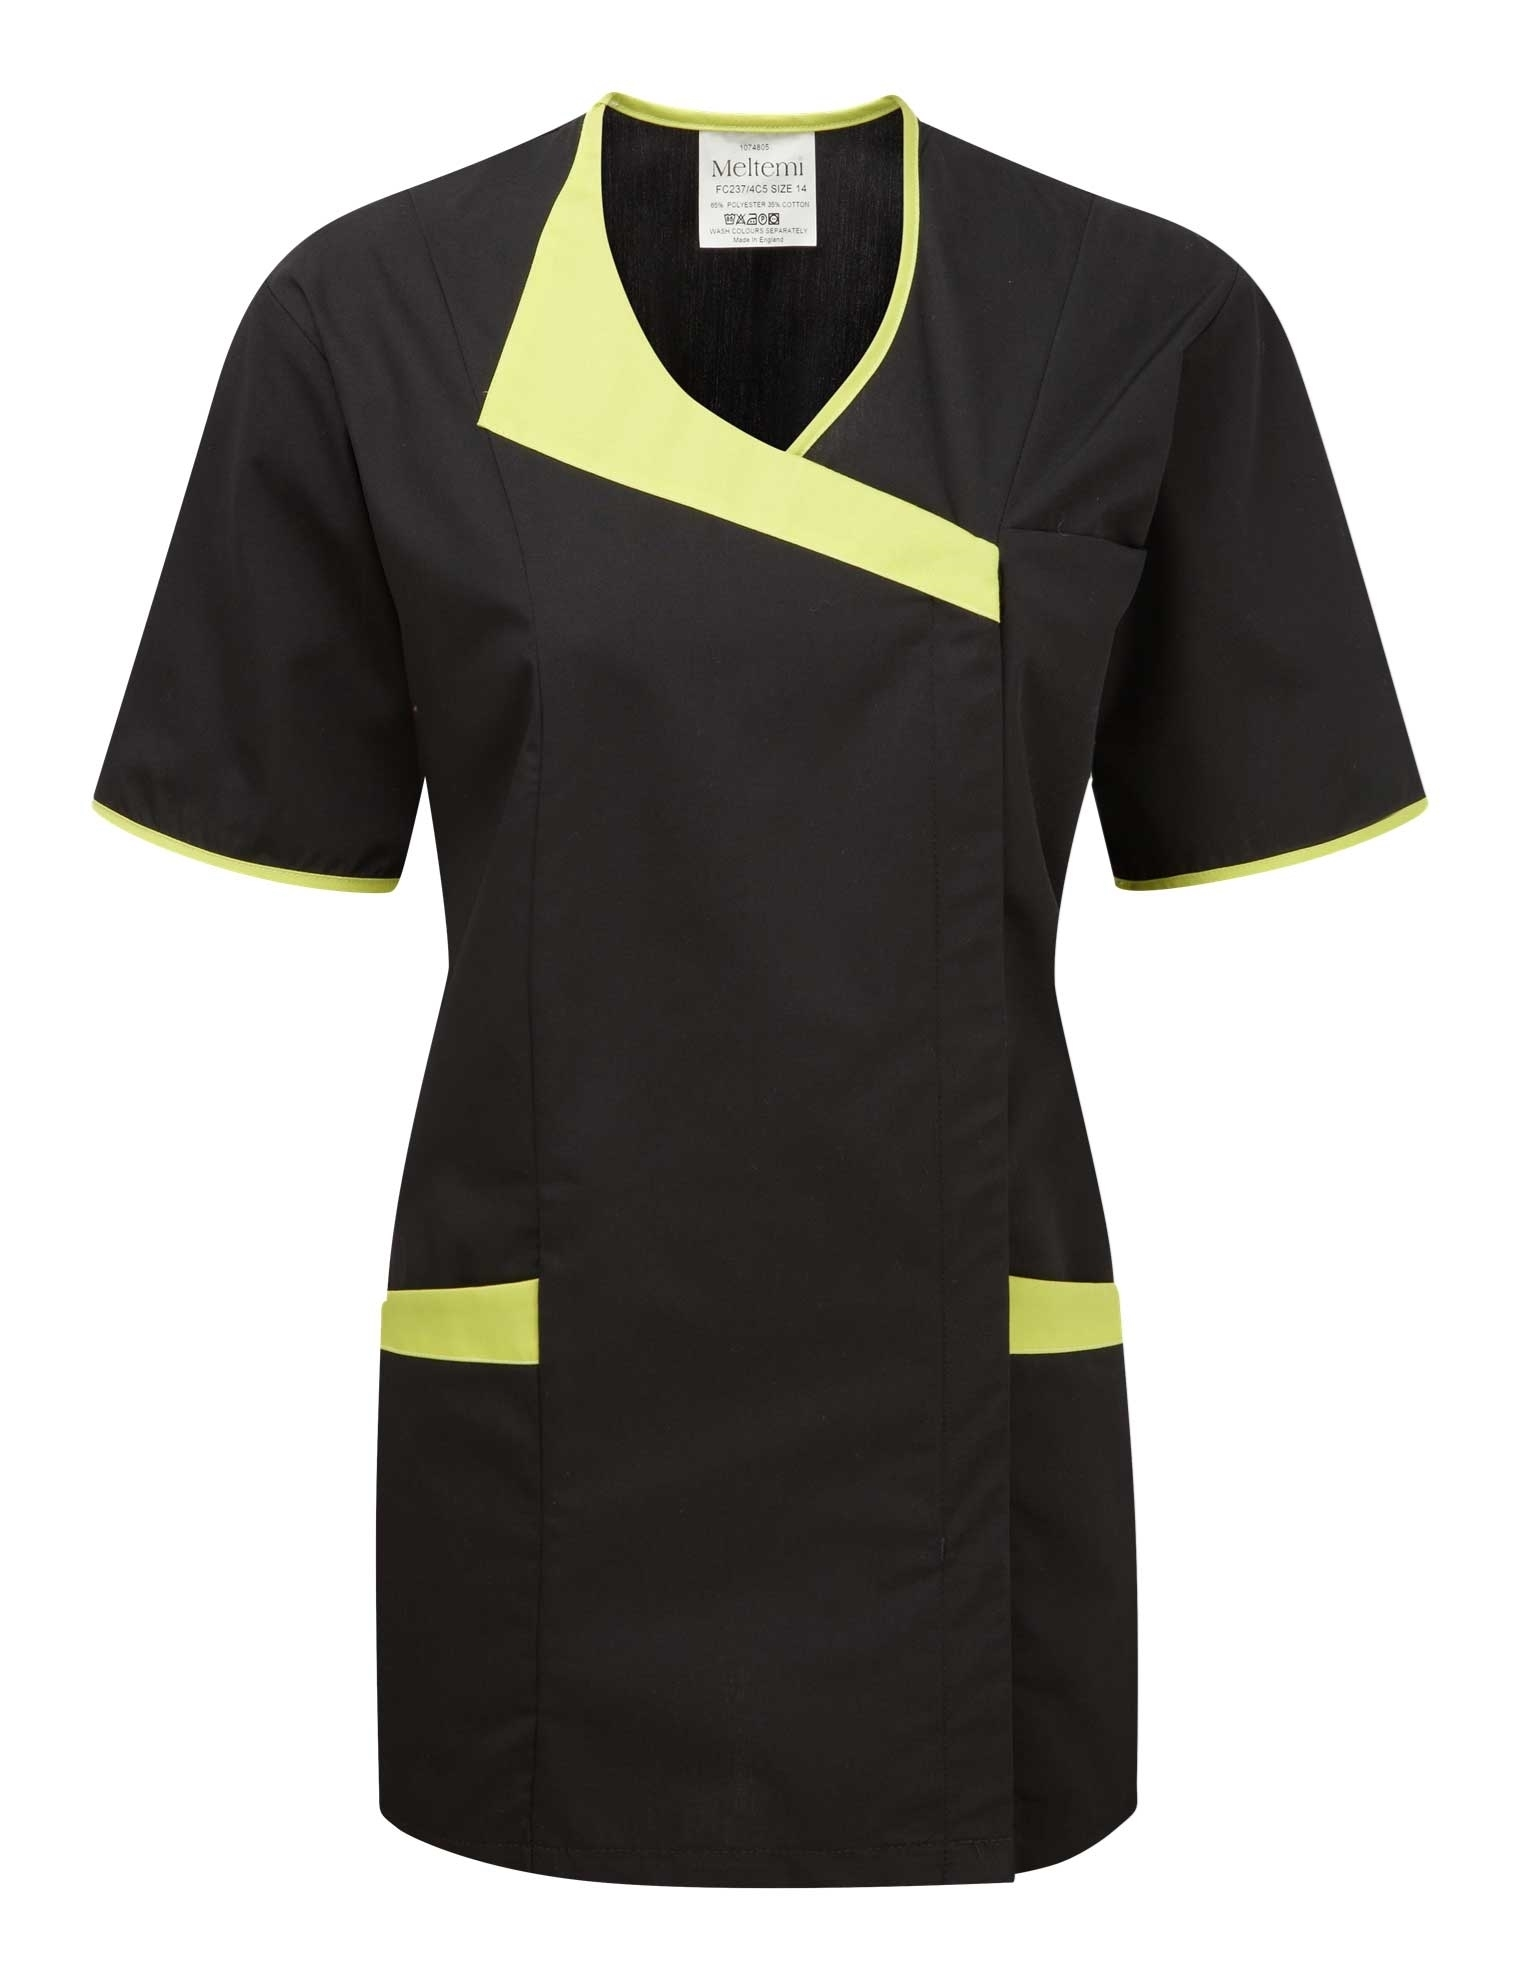 Picture of Asymmetric Tunic - Black/Lime Green